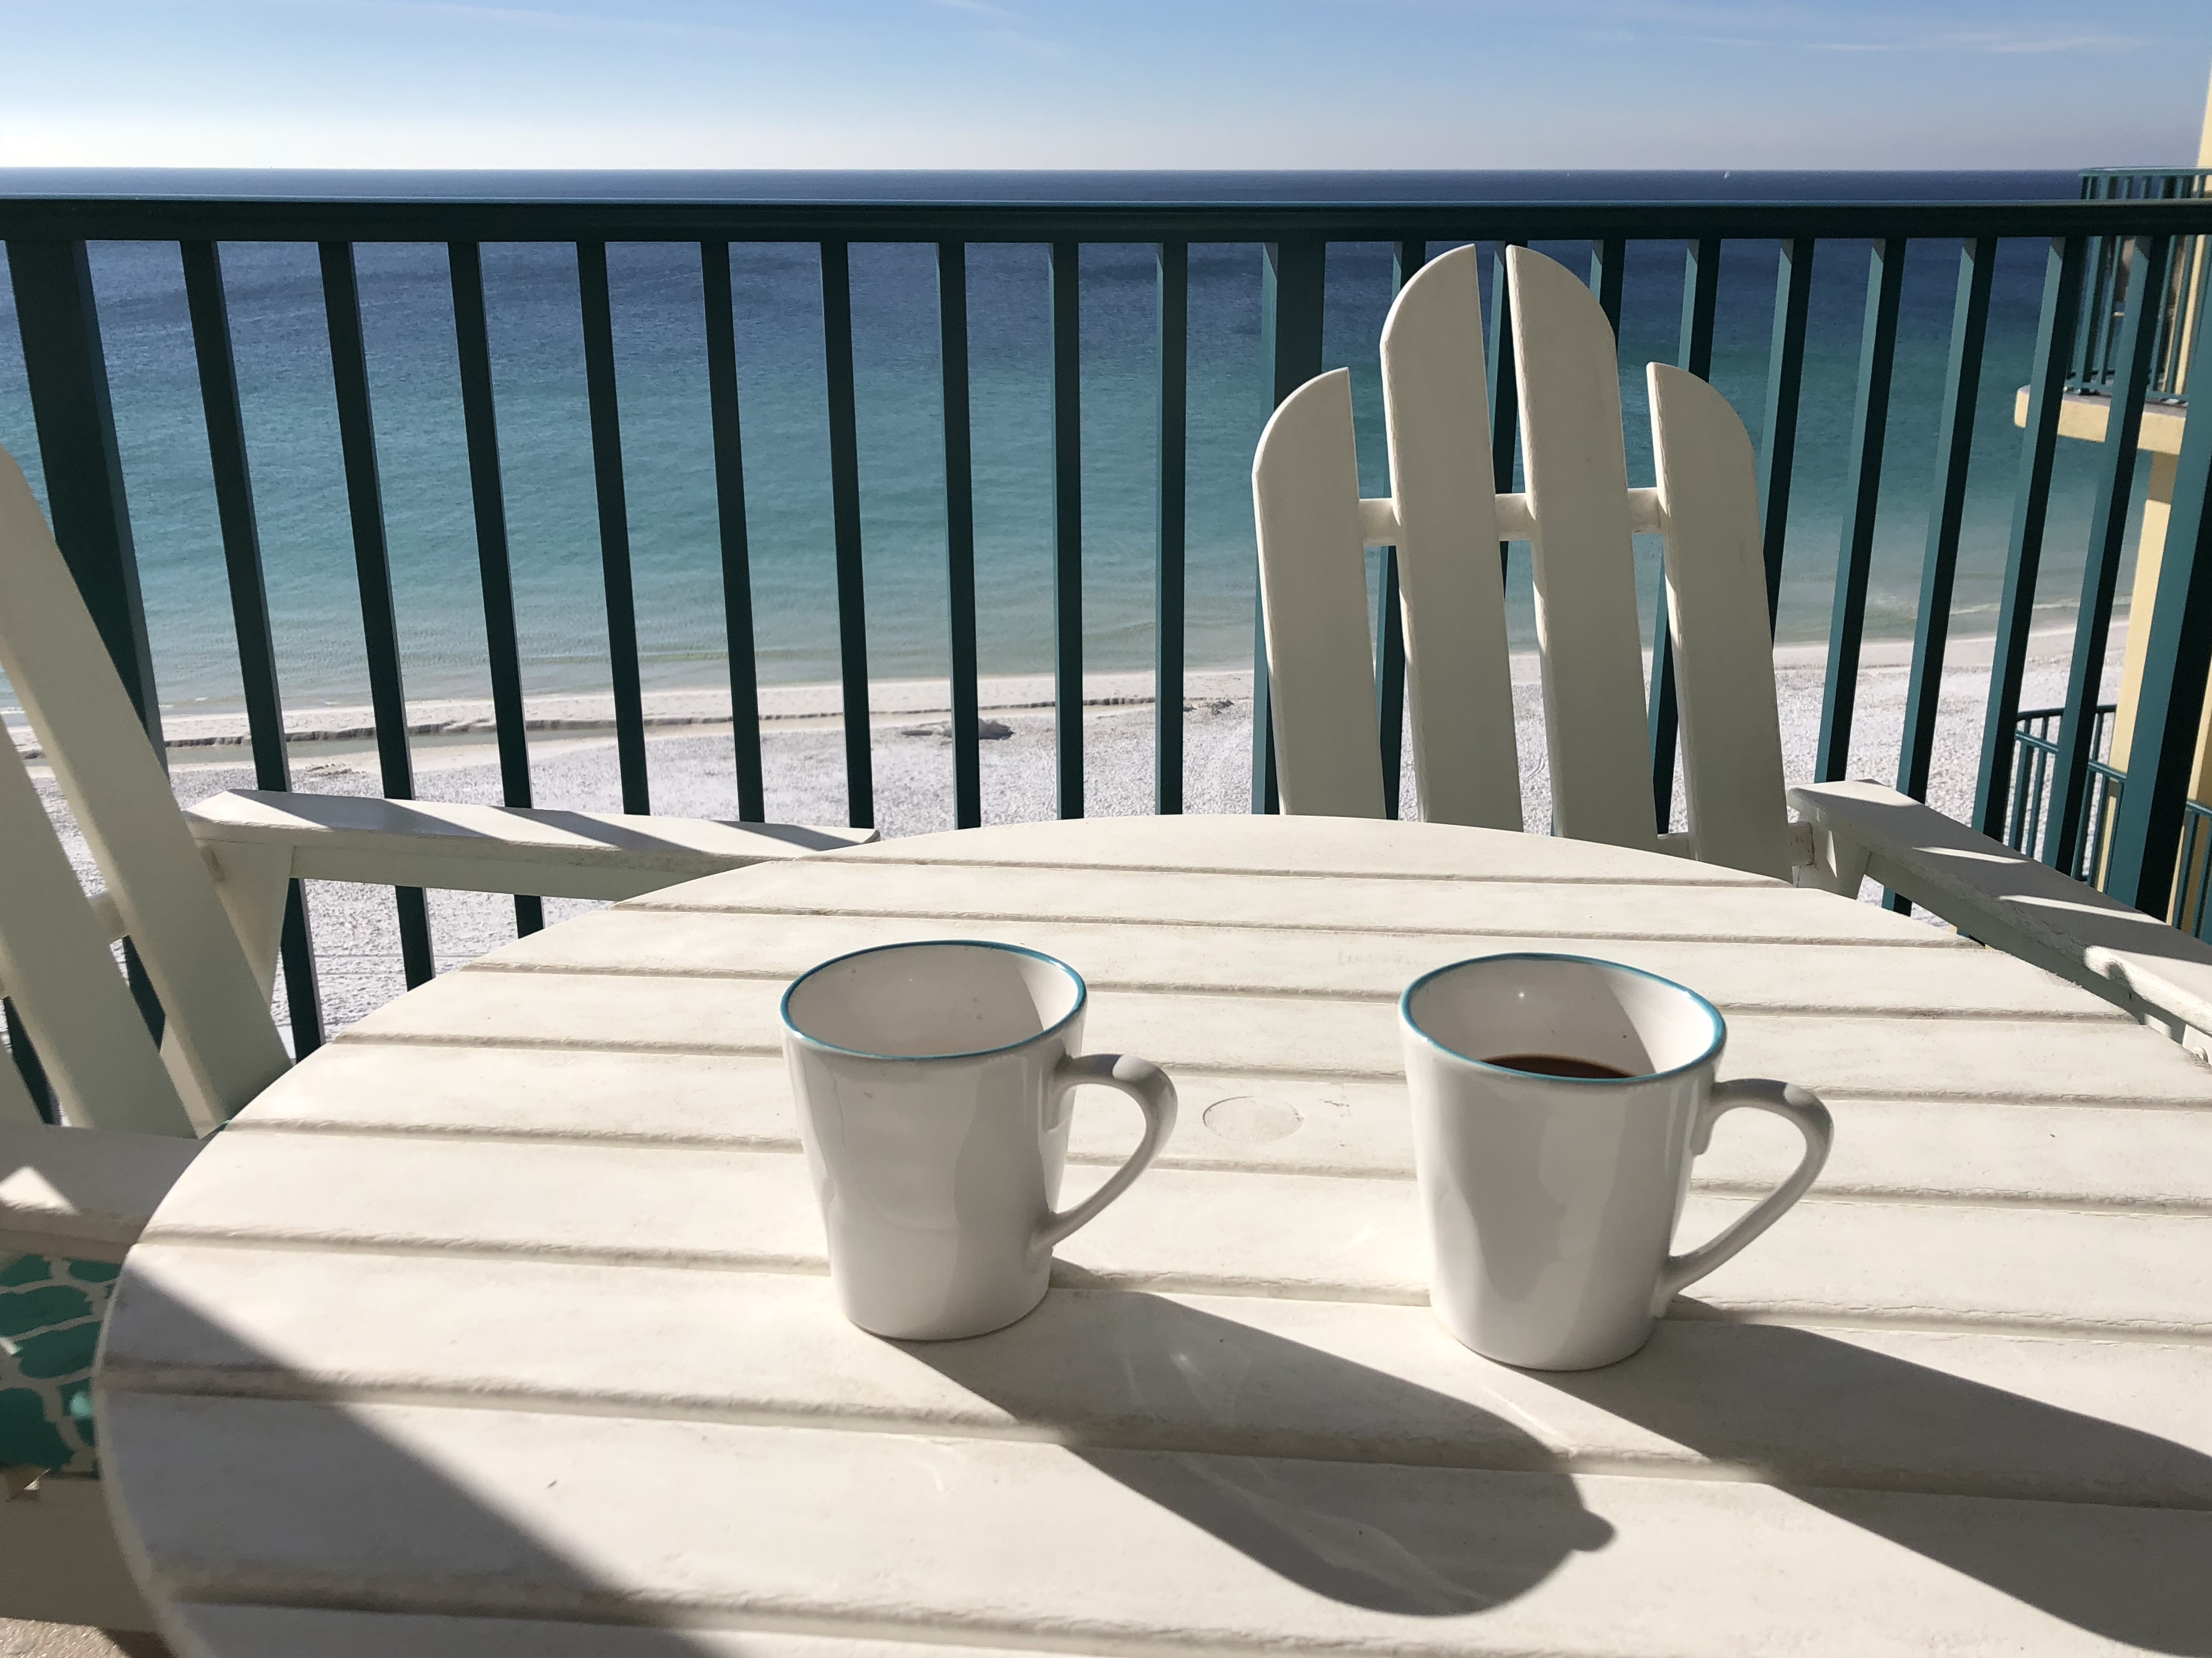 oceanfront coffee on balcony at sandnsol destin breakfast jade east